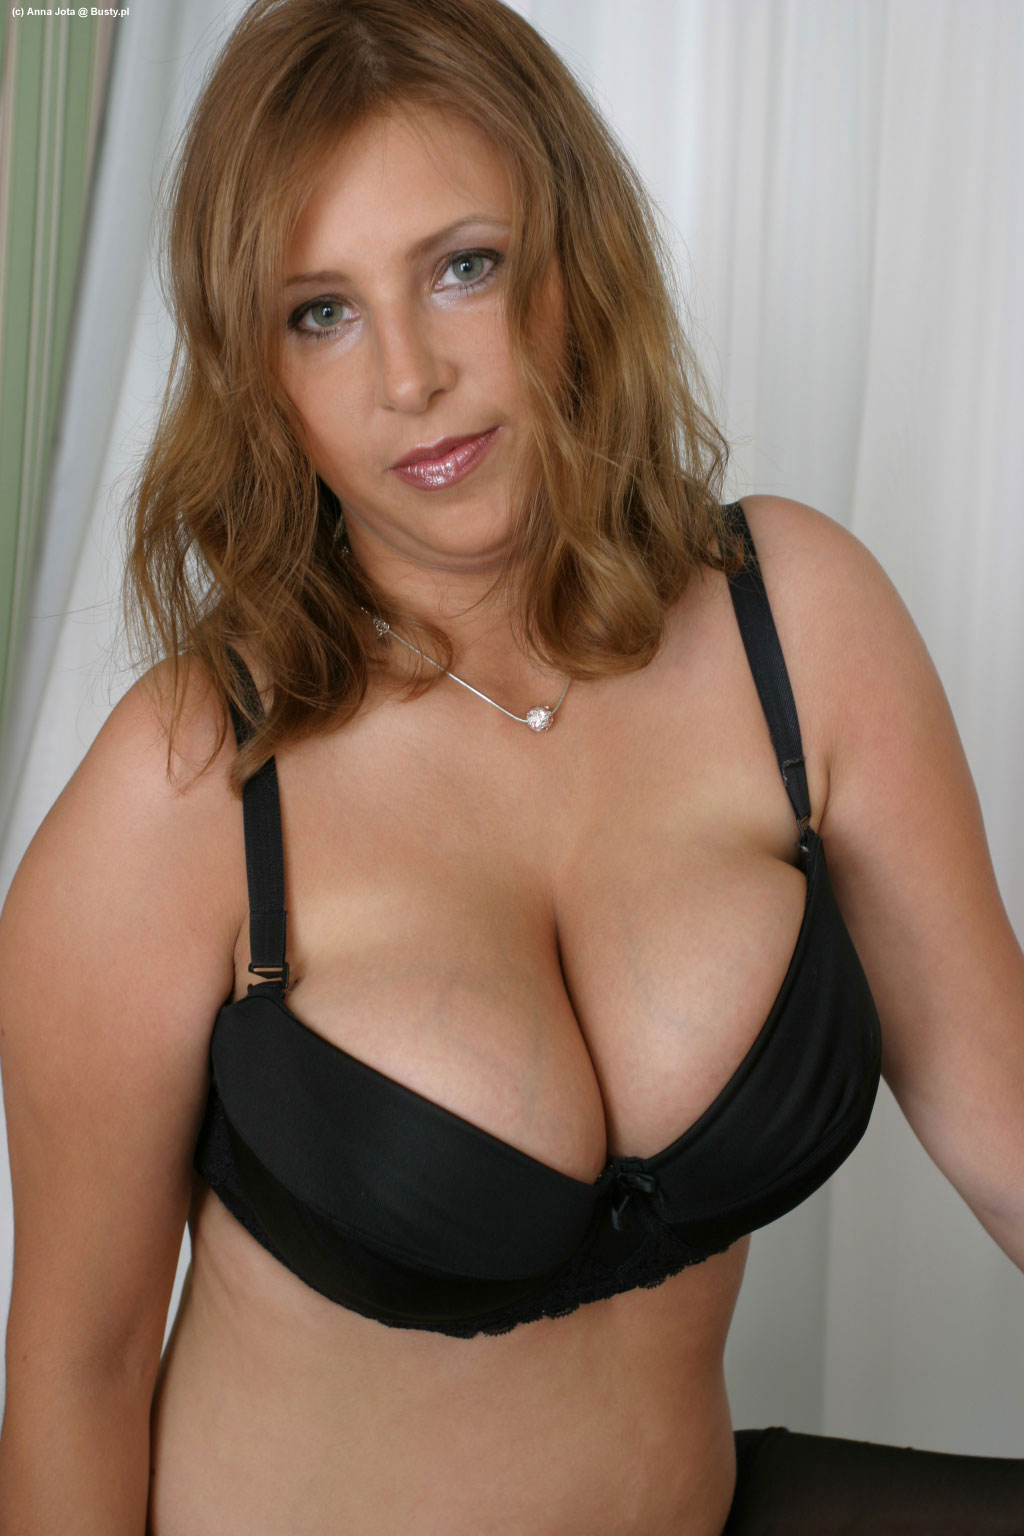 Busty sonia freeones sorry